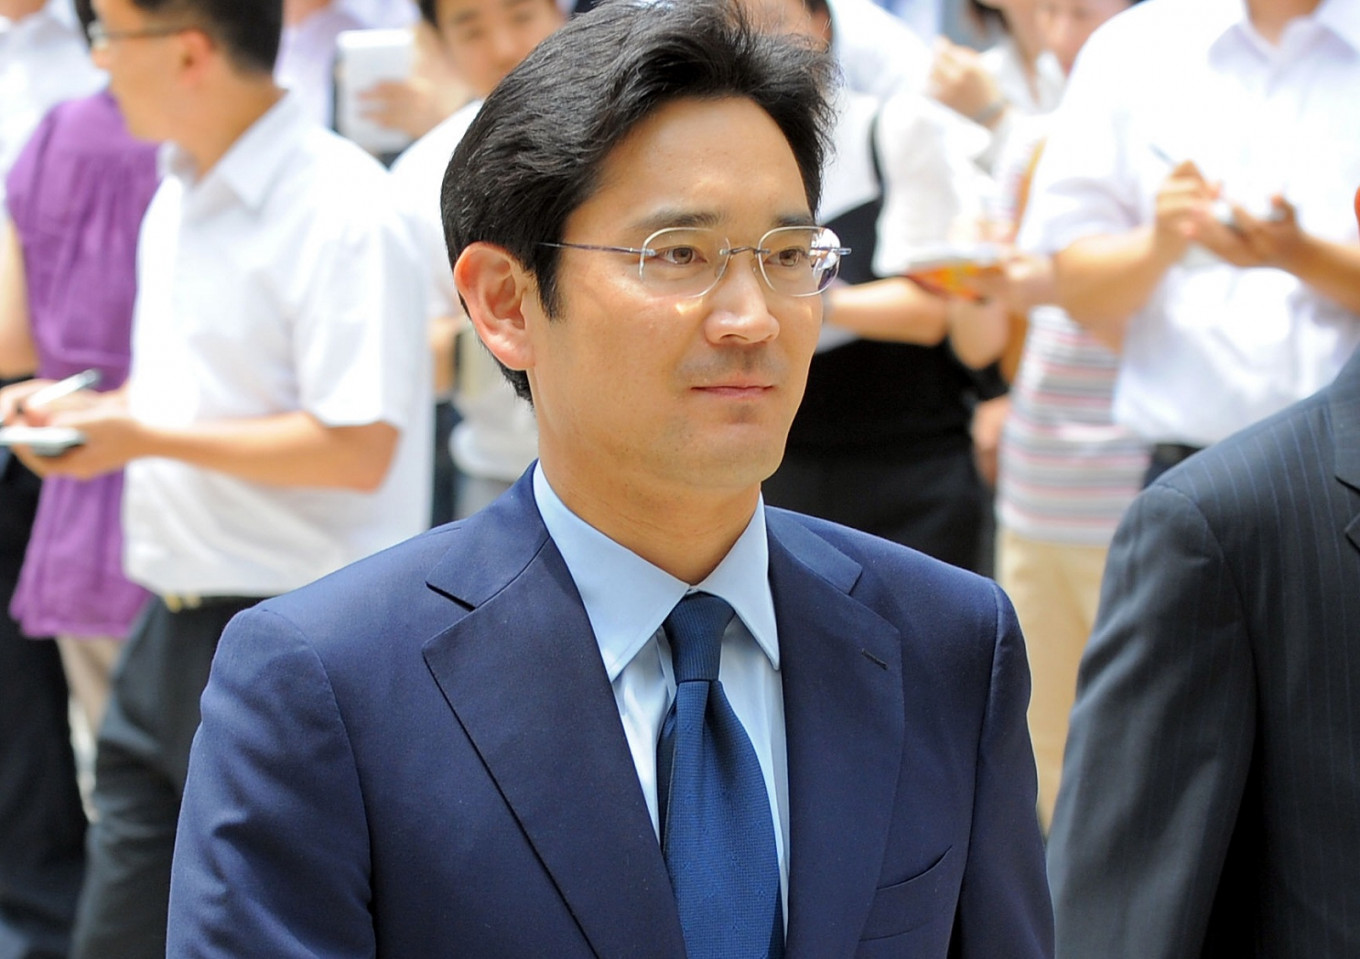 South Korea top court returns Samsung heir Lee's bribery case for review